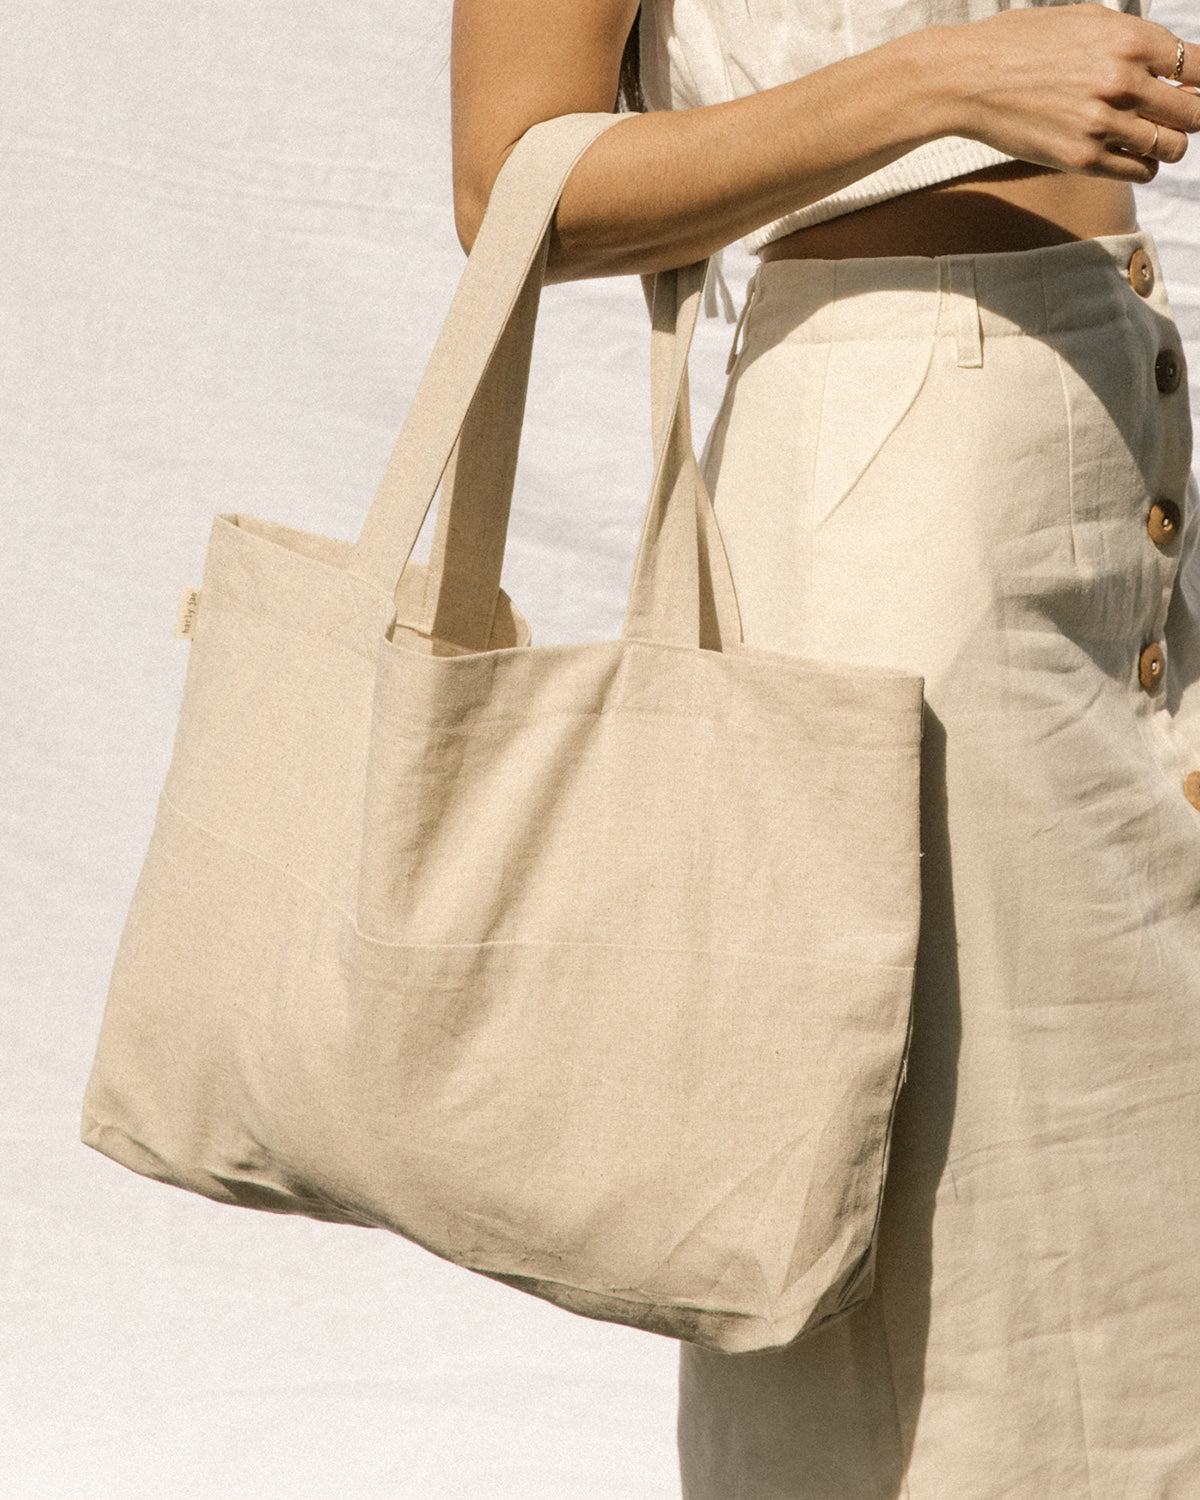 Zero Waste Tote - Natural